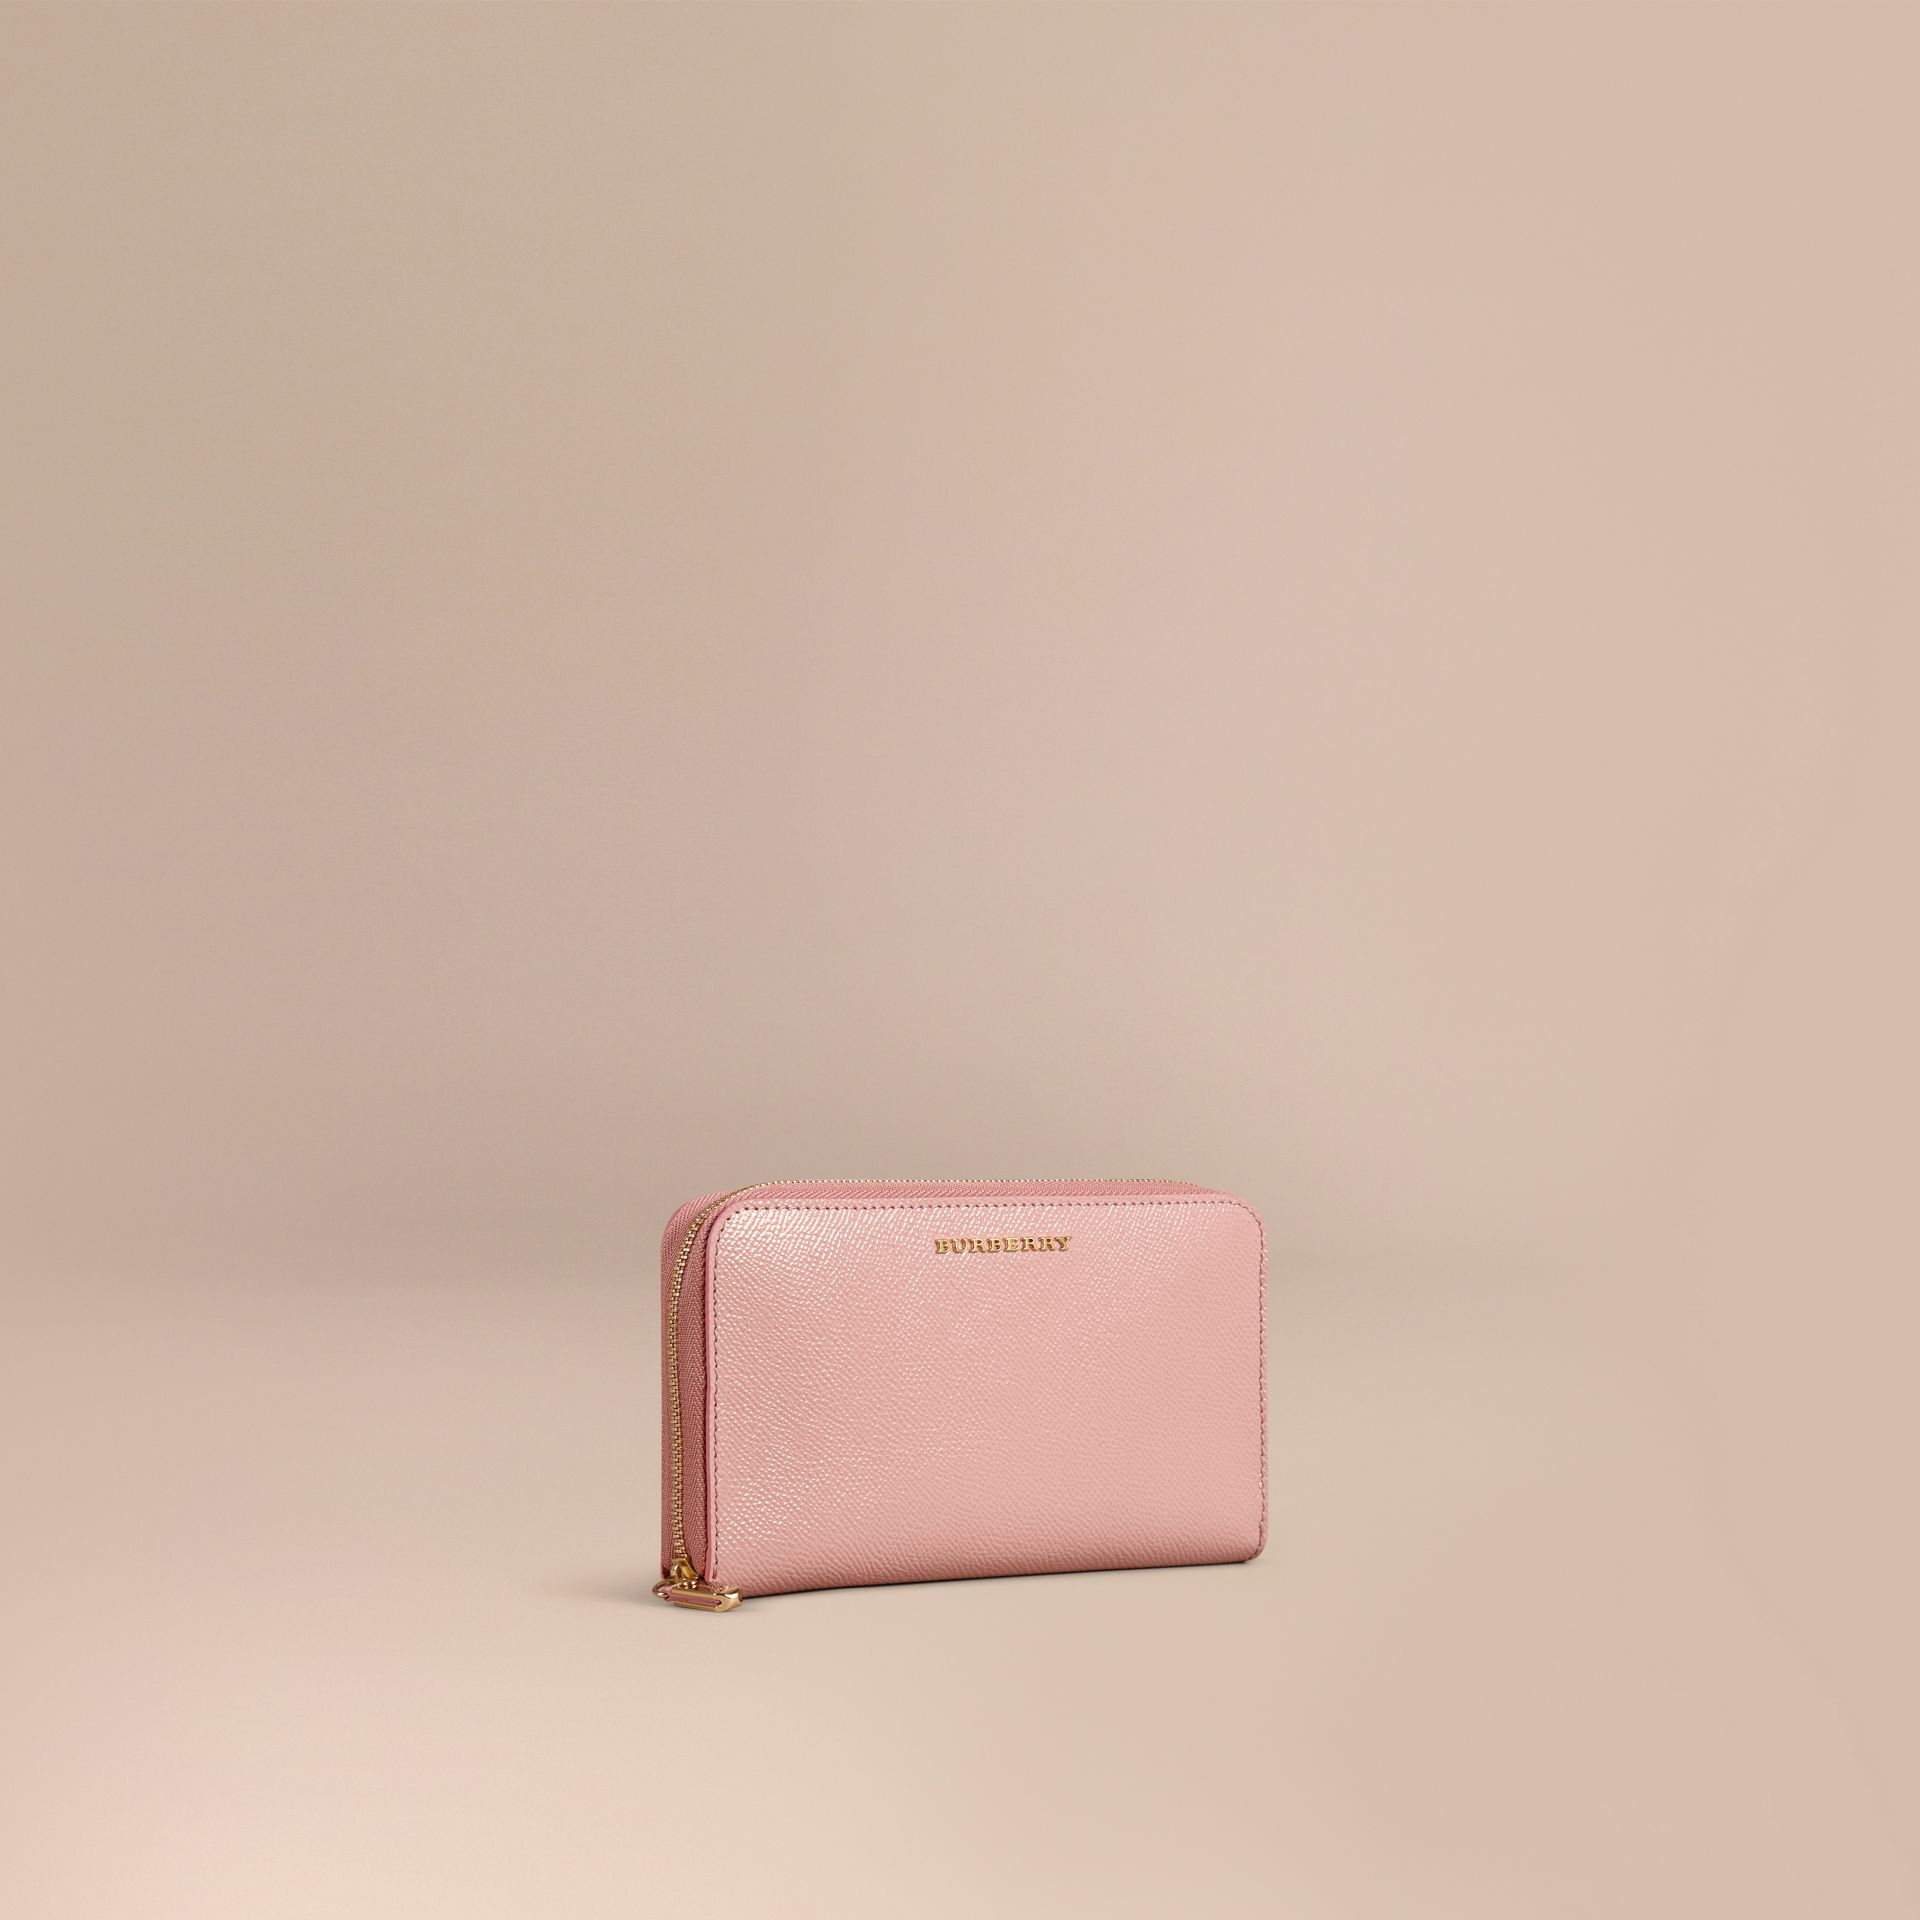 Ash rose Patent London Leather Ziparound Wallet Ash Rose - gallery image 1